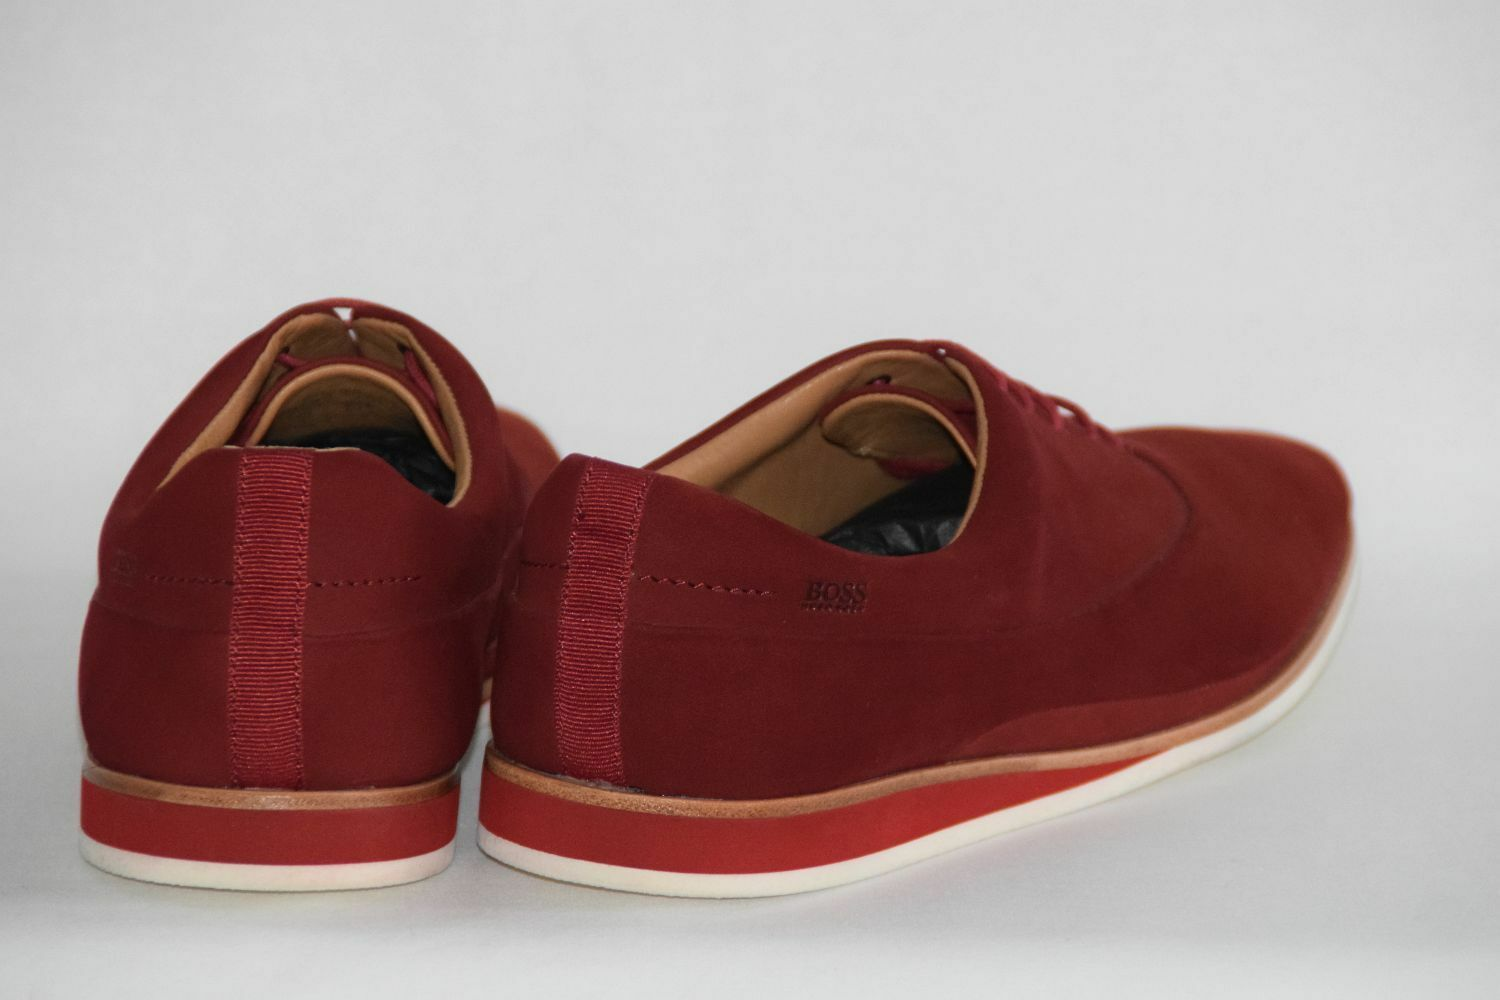 HUGO BOSS SCHUHE, Mod. Eclimo, Gr. 9.5 43,5 / UK 9.5 Gr. / US 10.5  Medium ROT a2dcab